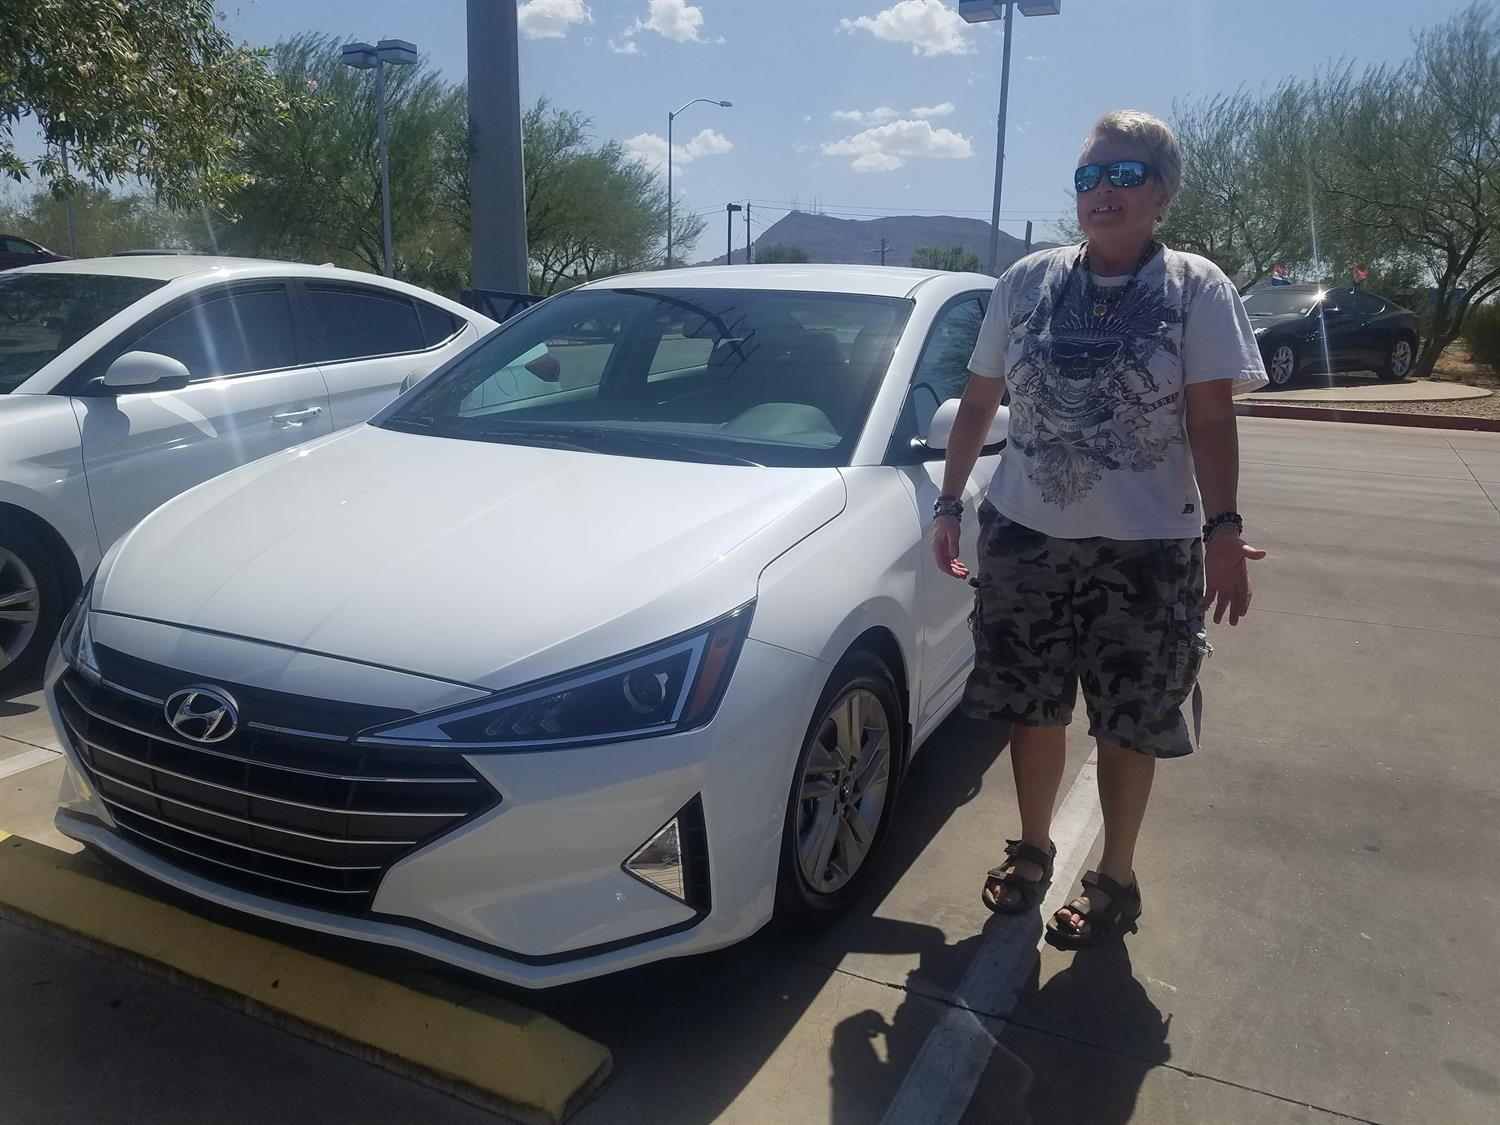 Awesome! Congratulations to JOYCE on your new 2020 HYUNDAI